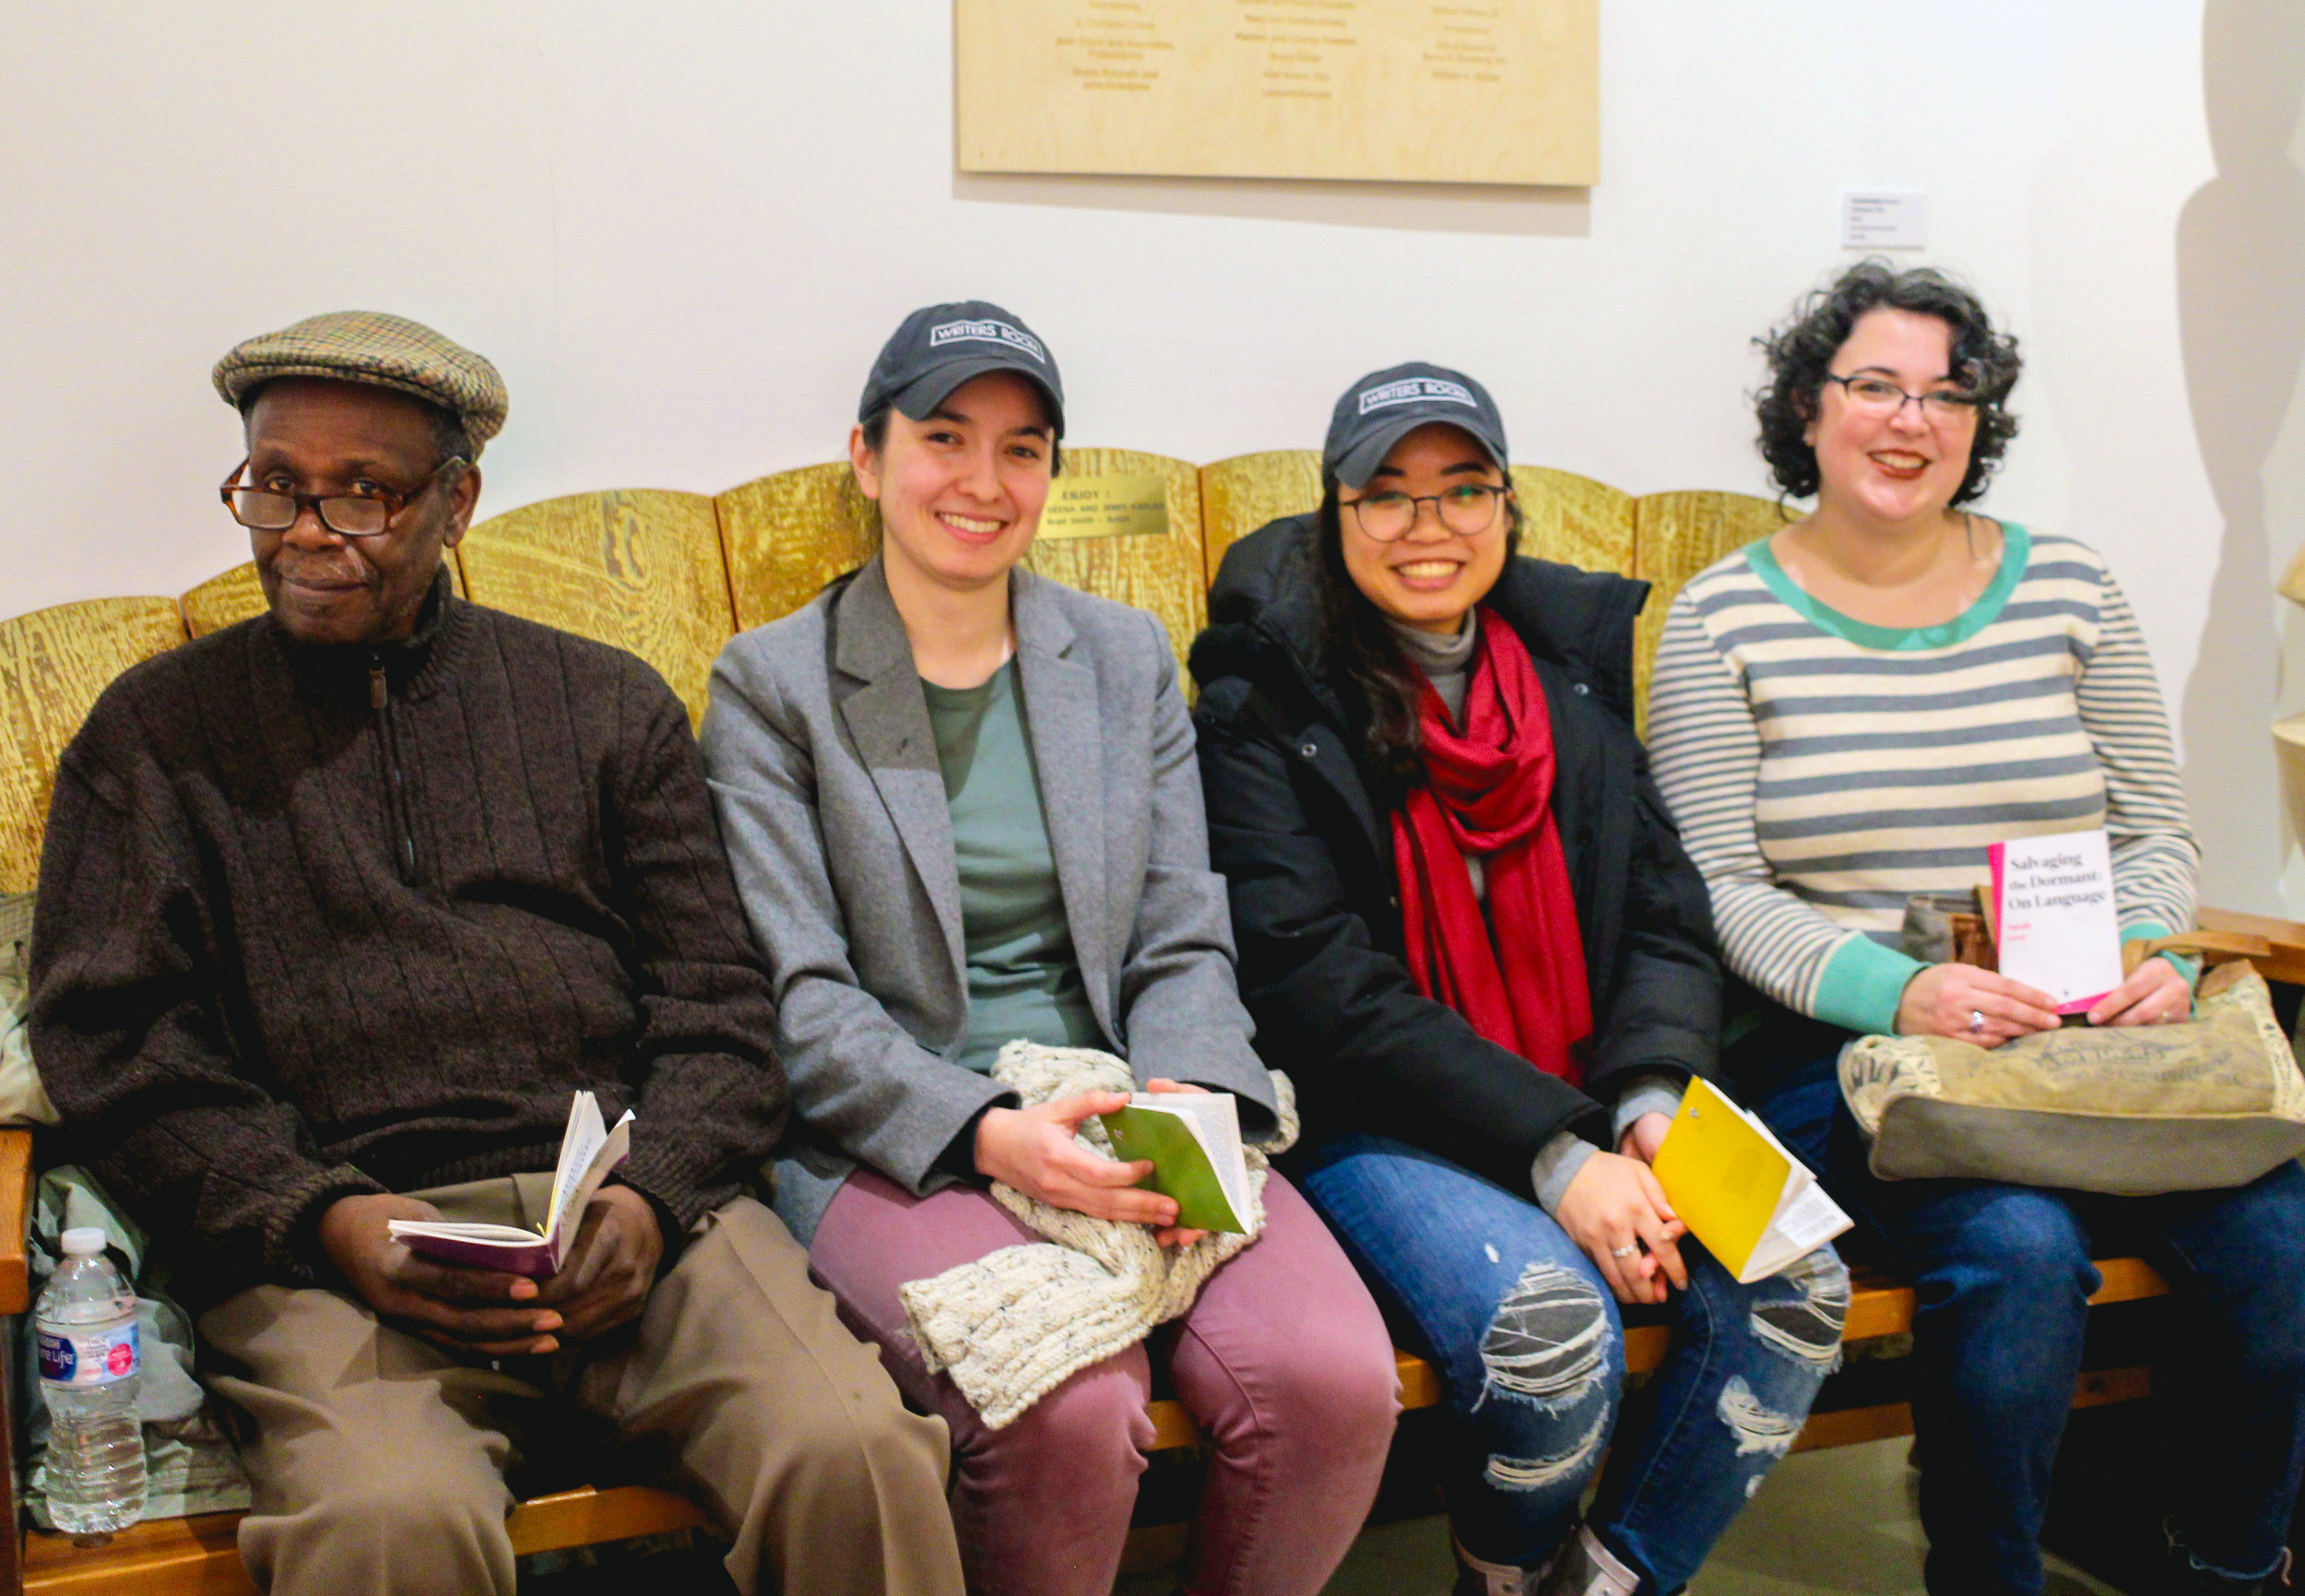 Four of our six fall 2018 Shockwire Chapbook Series authors reading at The Center for Art in Wood. Pictured (left to right): Norman Cain, Lauren Lowe, Briyanna Hymms, and Sarah Grey